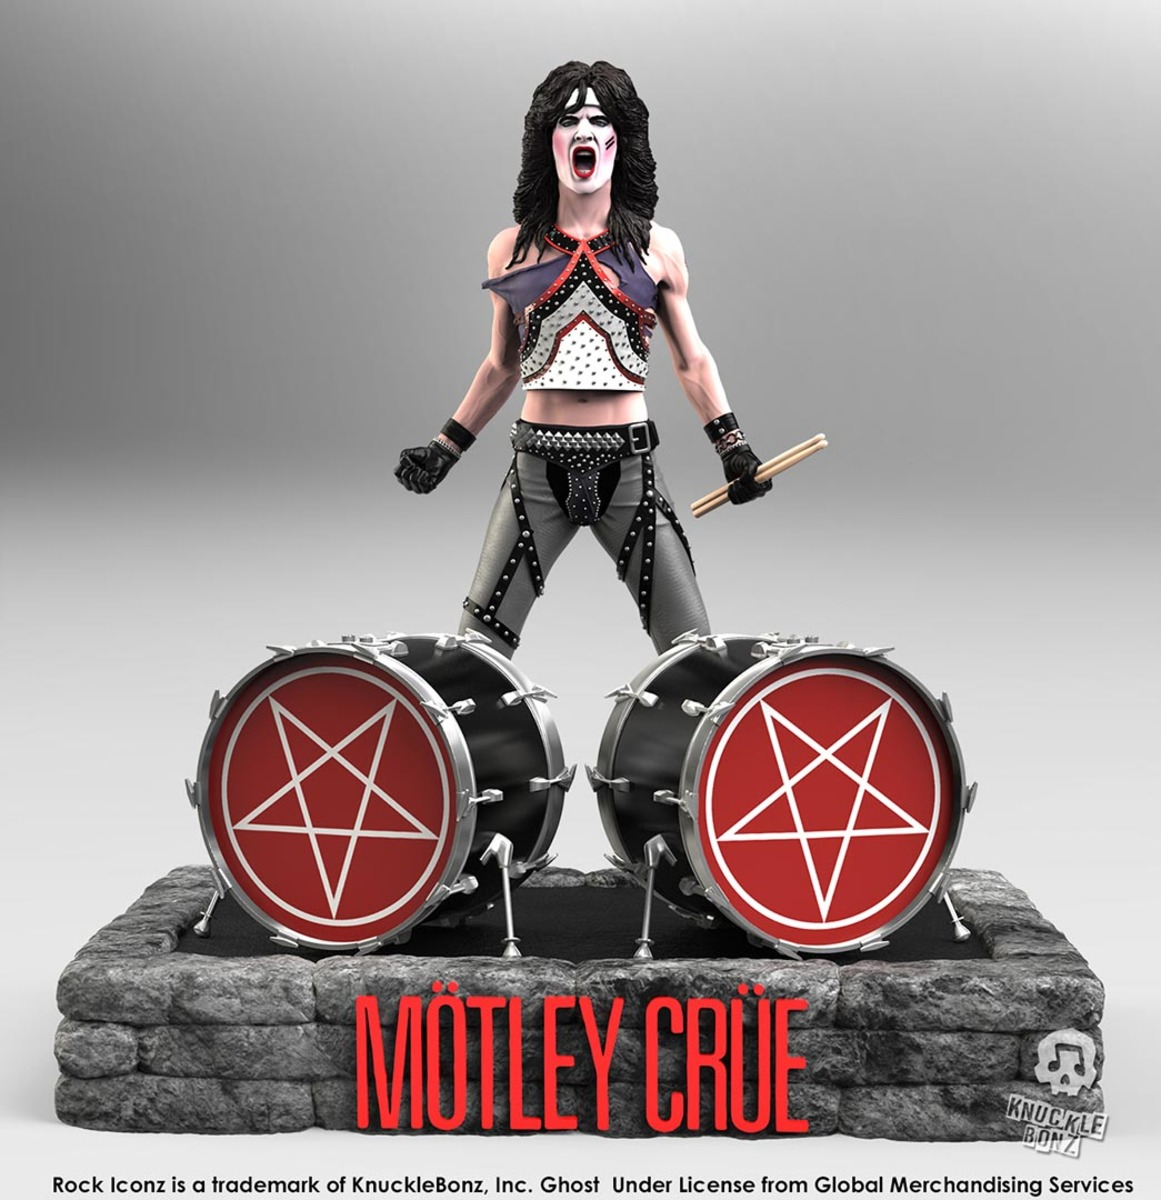 figurka Mötley Crüe - Tommy Lee - Rock Iconz - KNUCKLEBONZ - KBMCTL100